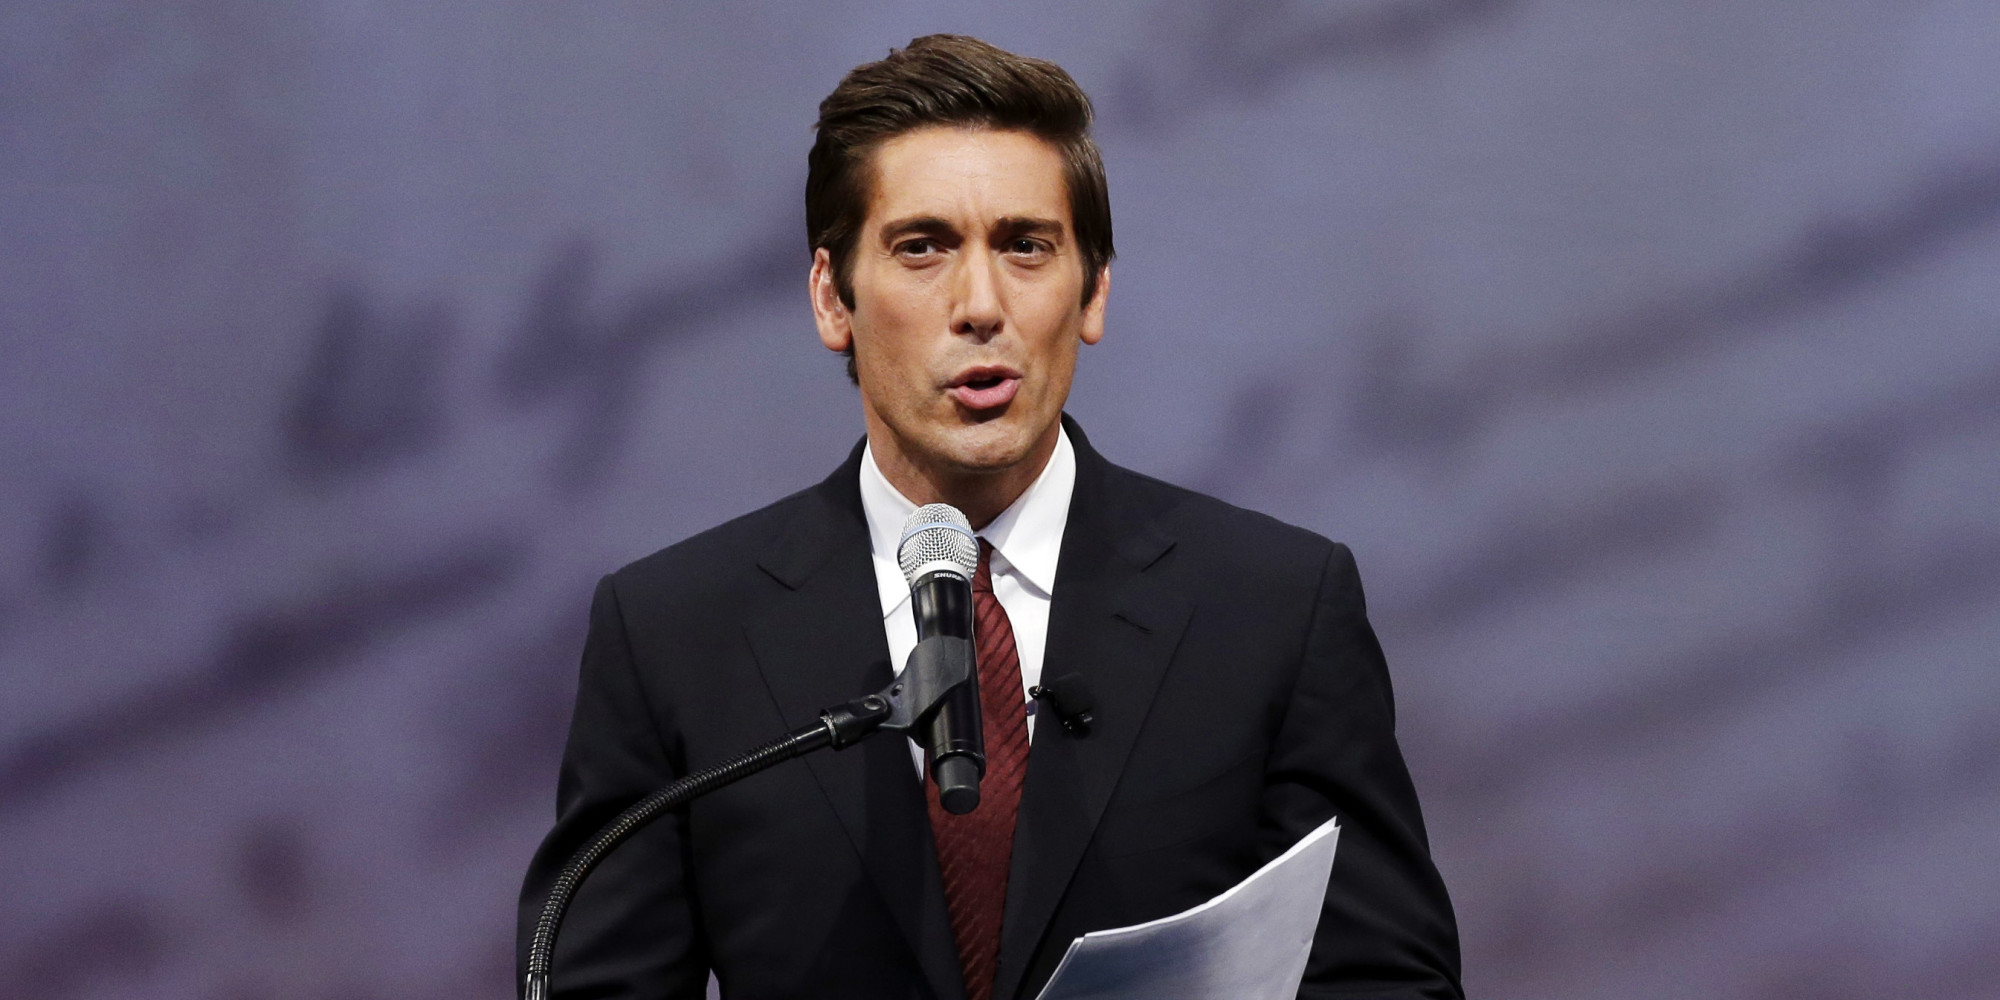 abc news u0026 39  david muir finally addresses brian williams